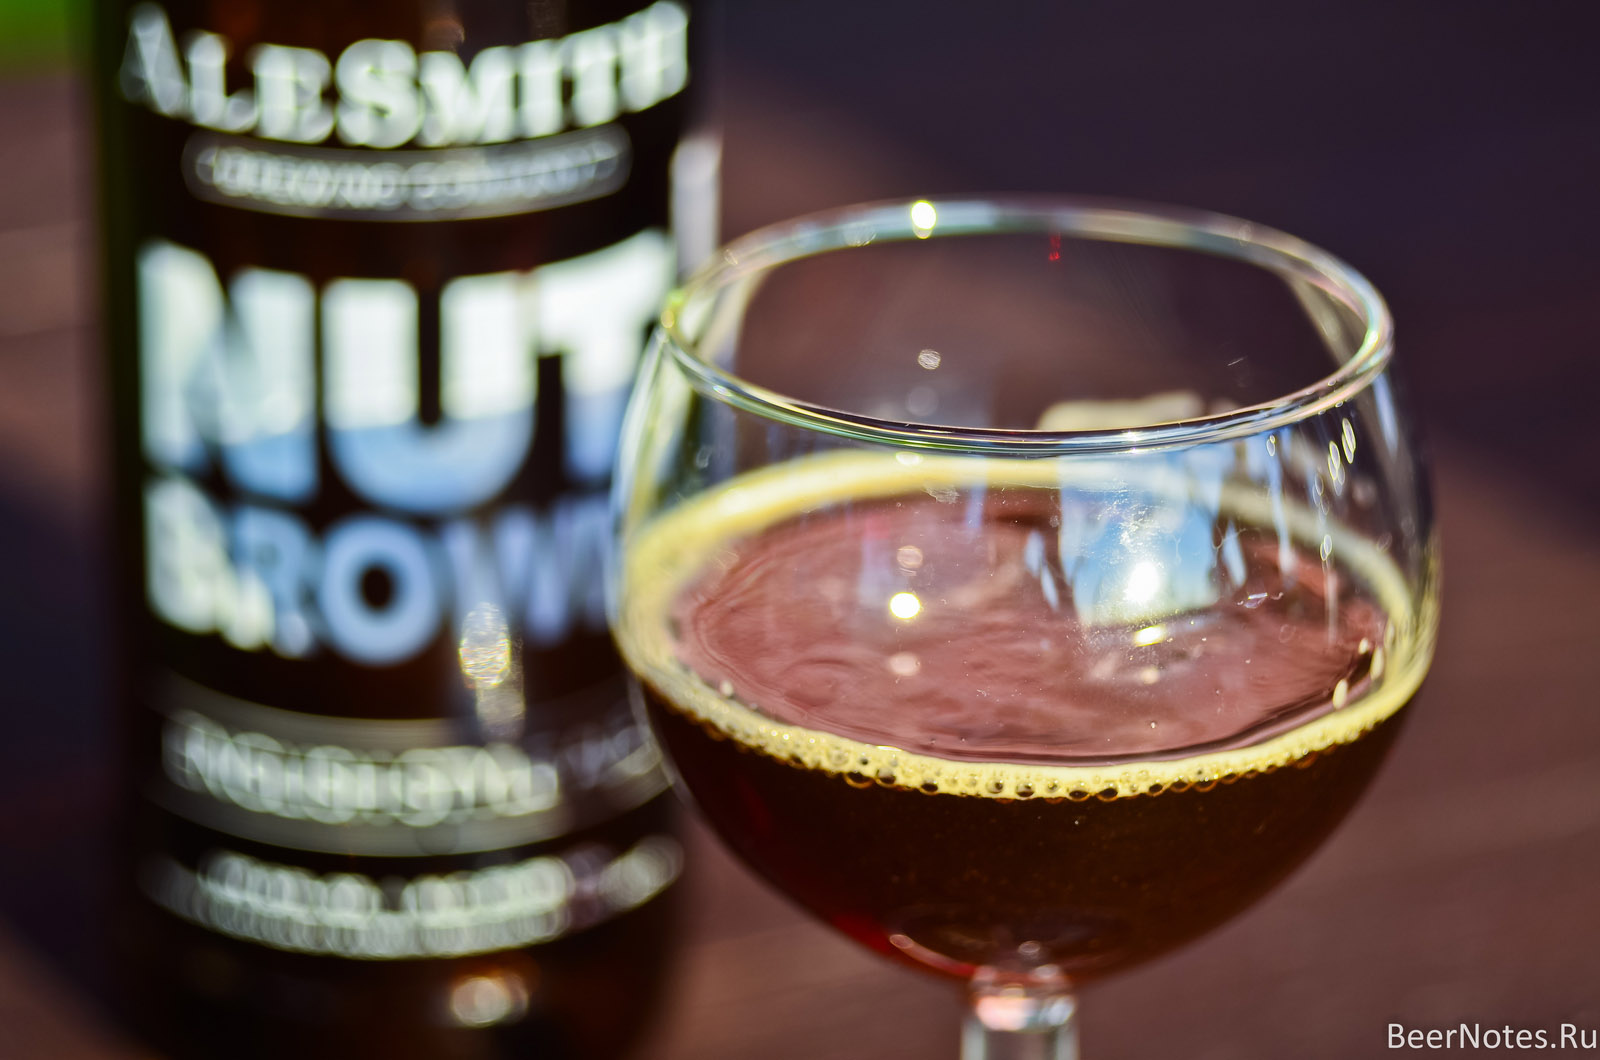 alesmith-nut-brown-english-style-ale3